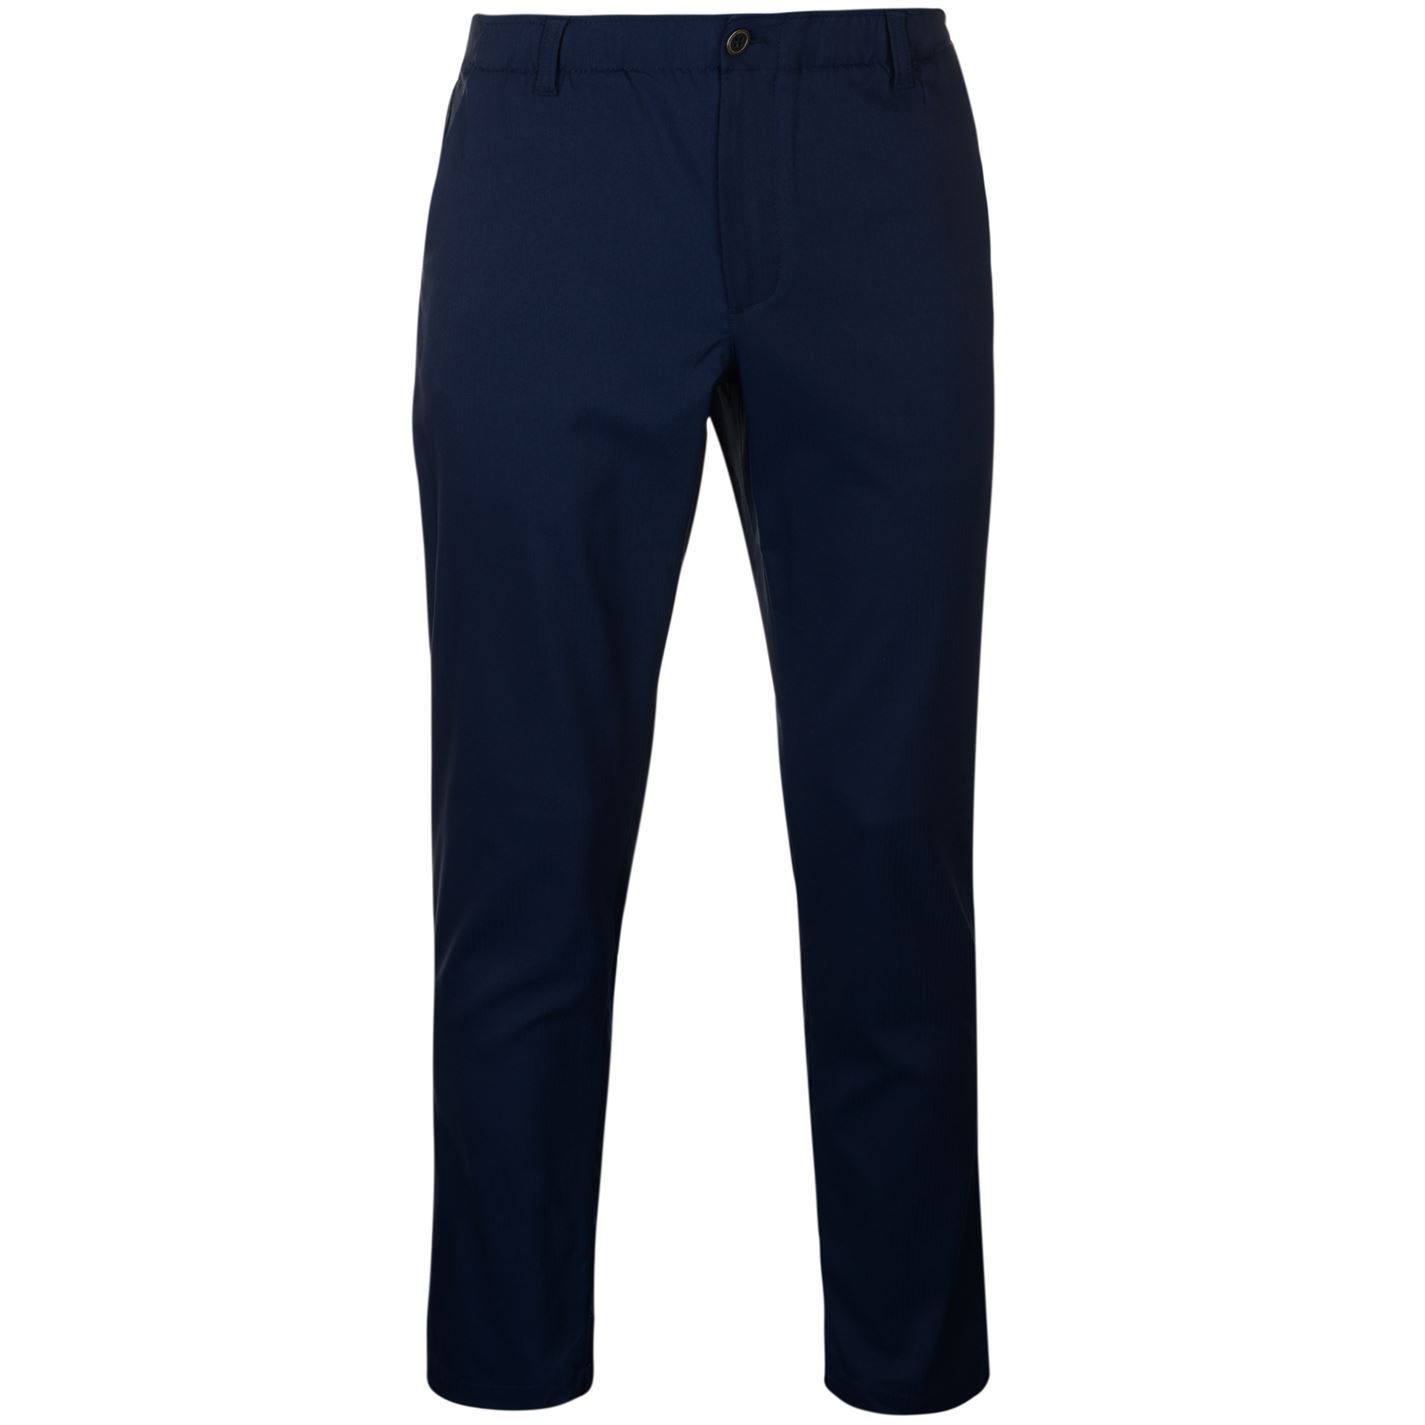 Under Armour Mens Takeover Pants Golf Trousers Bottoms Lightweight ... 4bf52413a